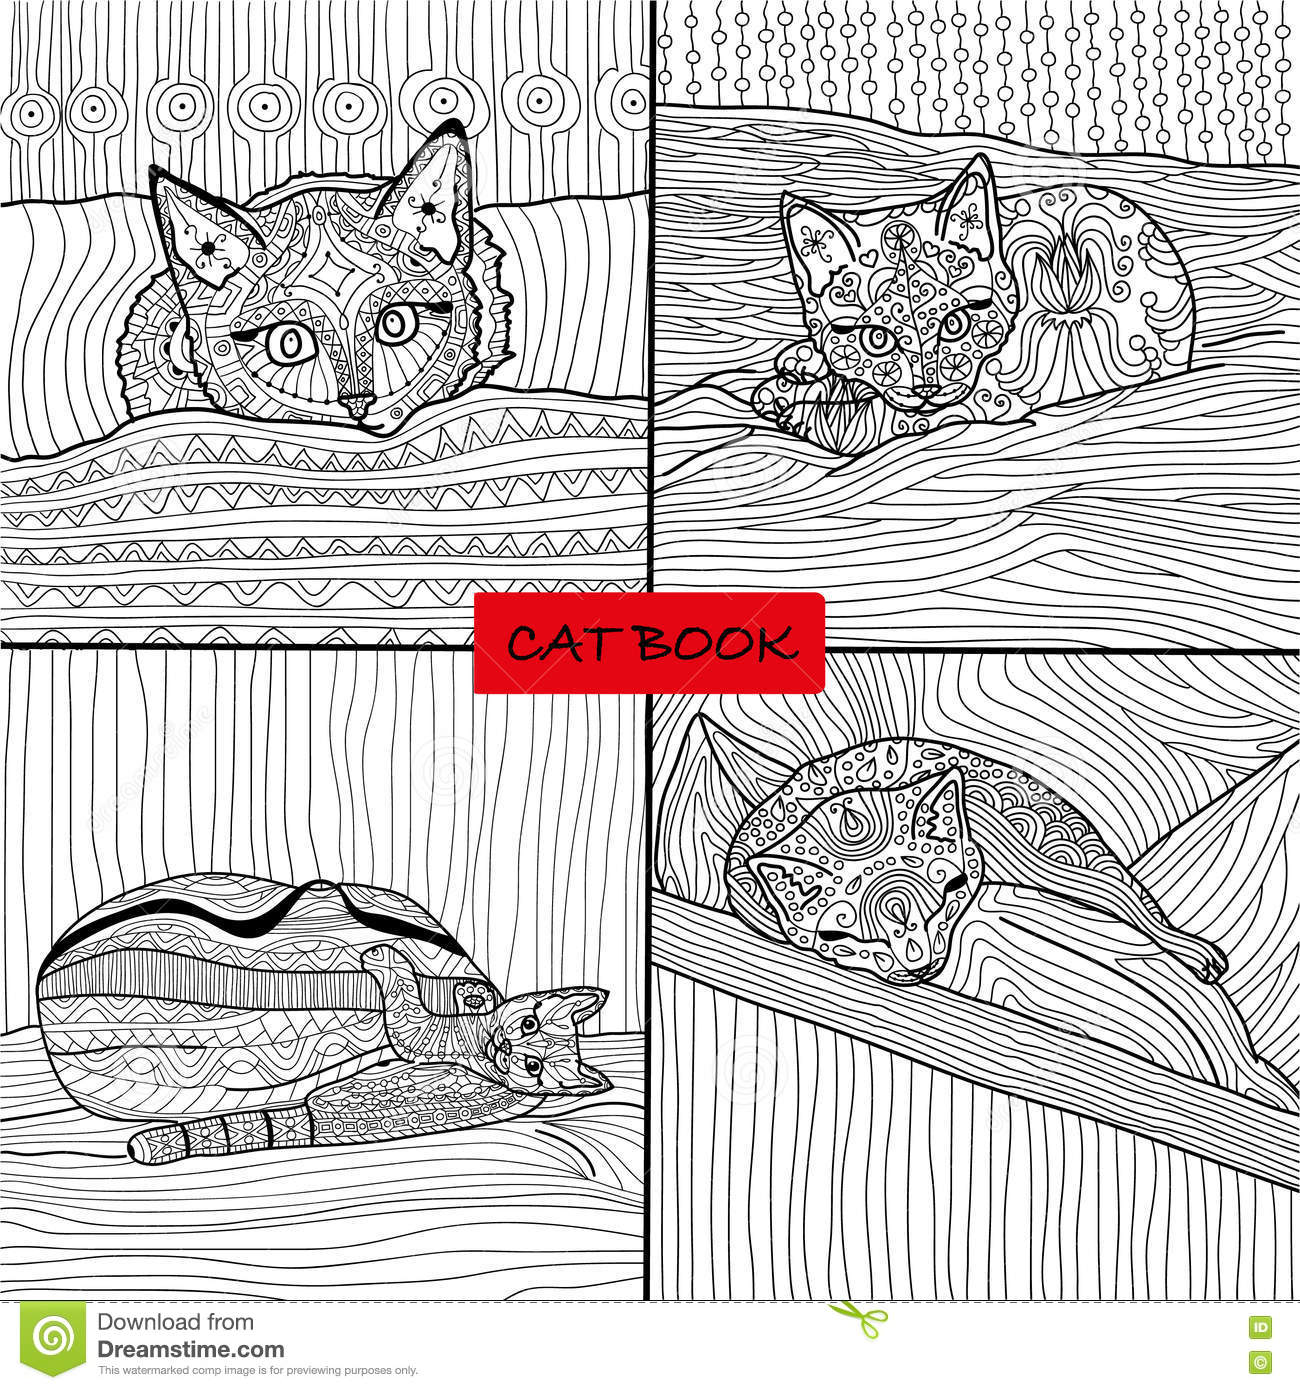 Coloring Book For Adults - 1 Set Of Four Drawings Coloring Pages For ...